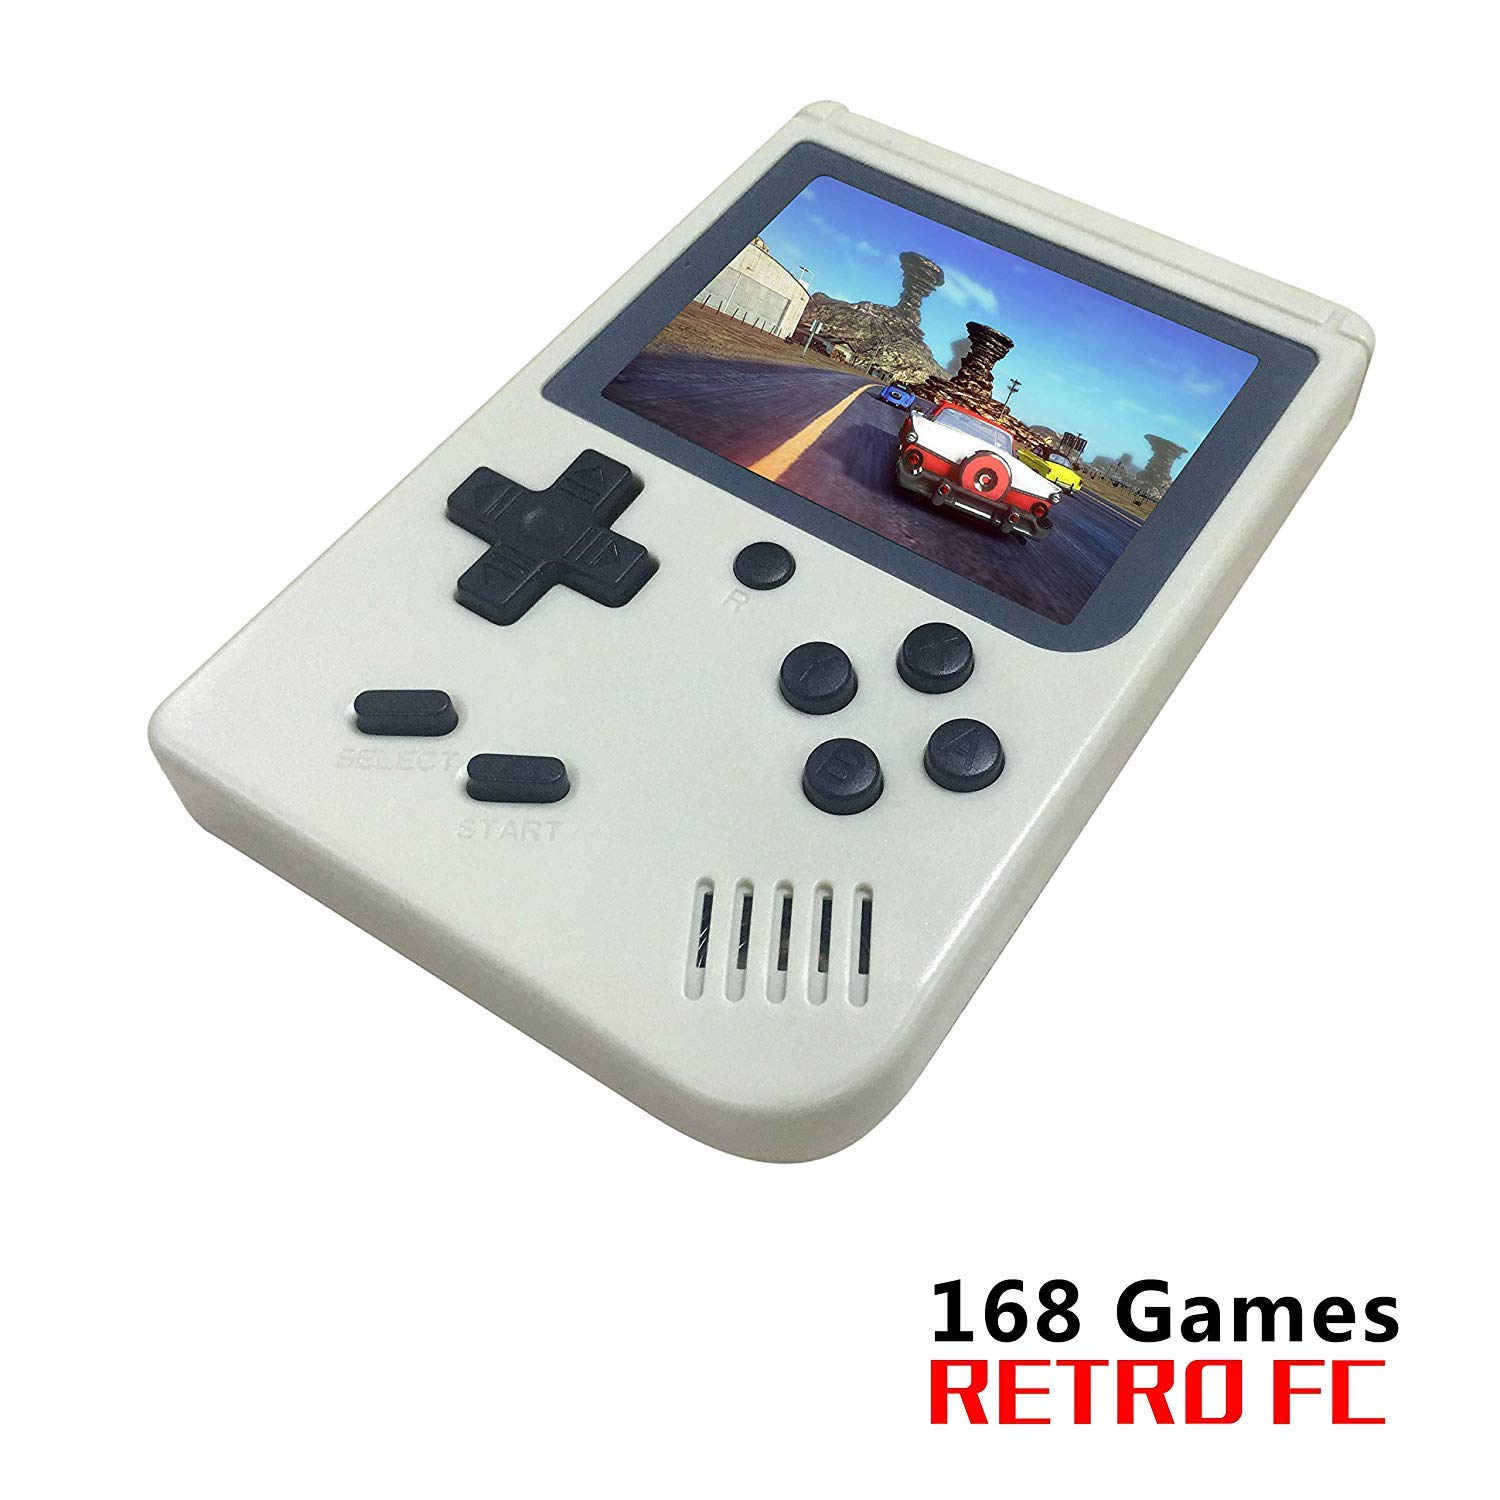 FLYFISH Handheld Game Console, Retro FC Game Console 3 Inch 168 Classic Games , Birthday Present for Children -White